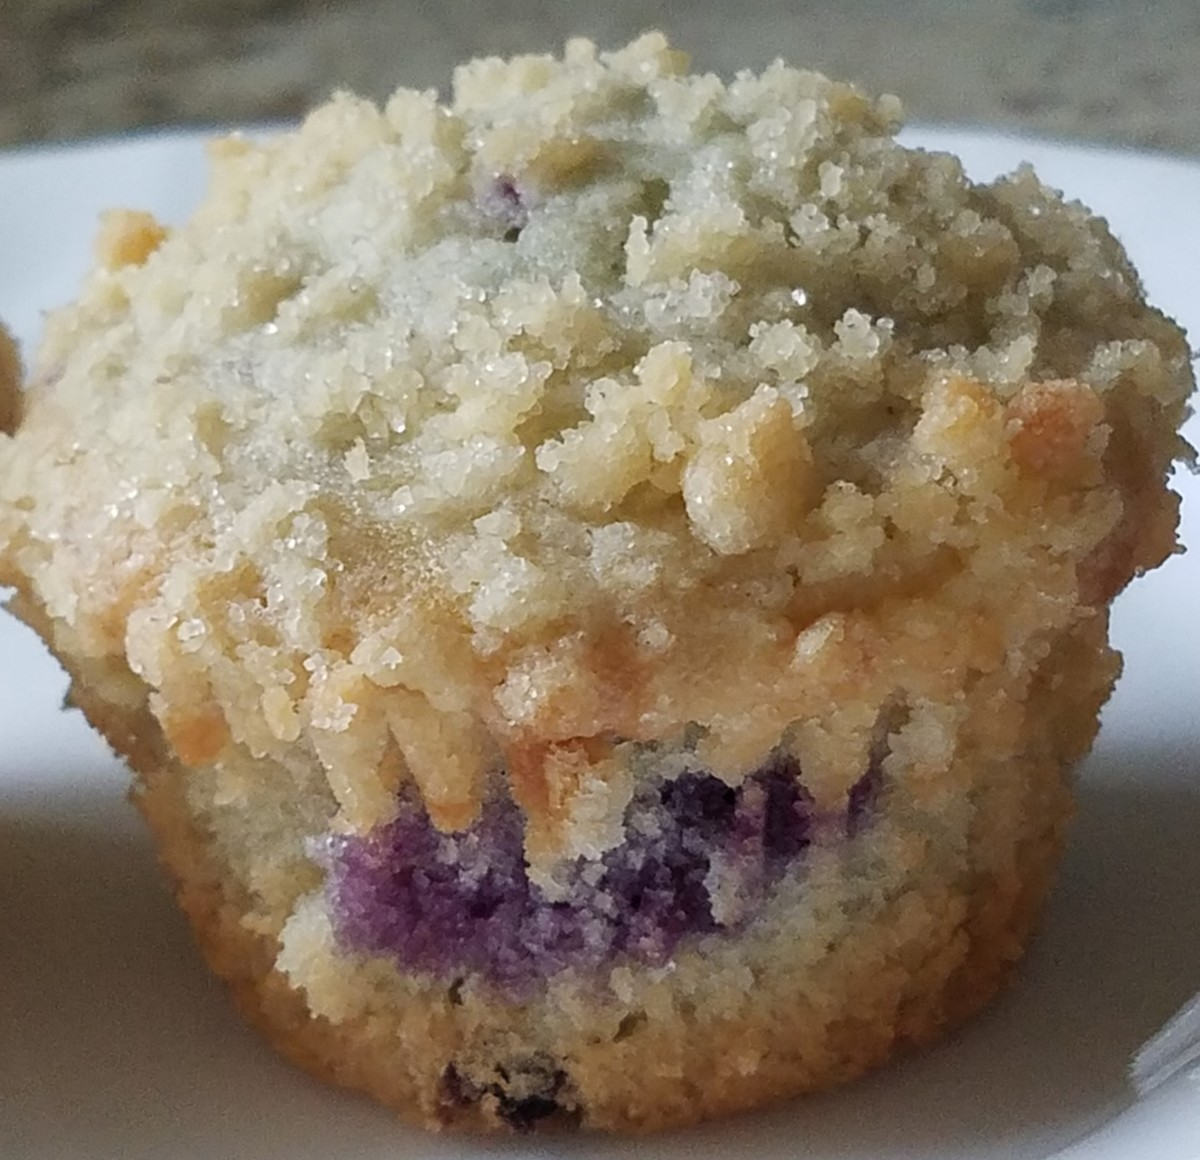 You'd Never Know It's Vegan: Blueberry Crumb Muffin Recipe